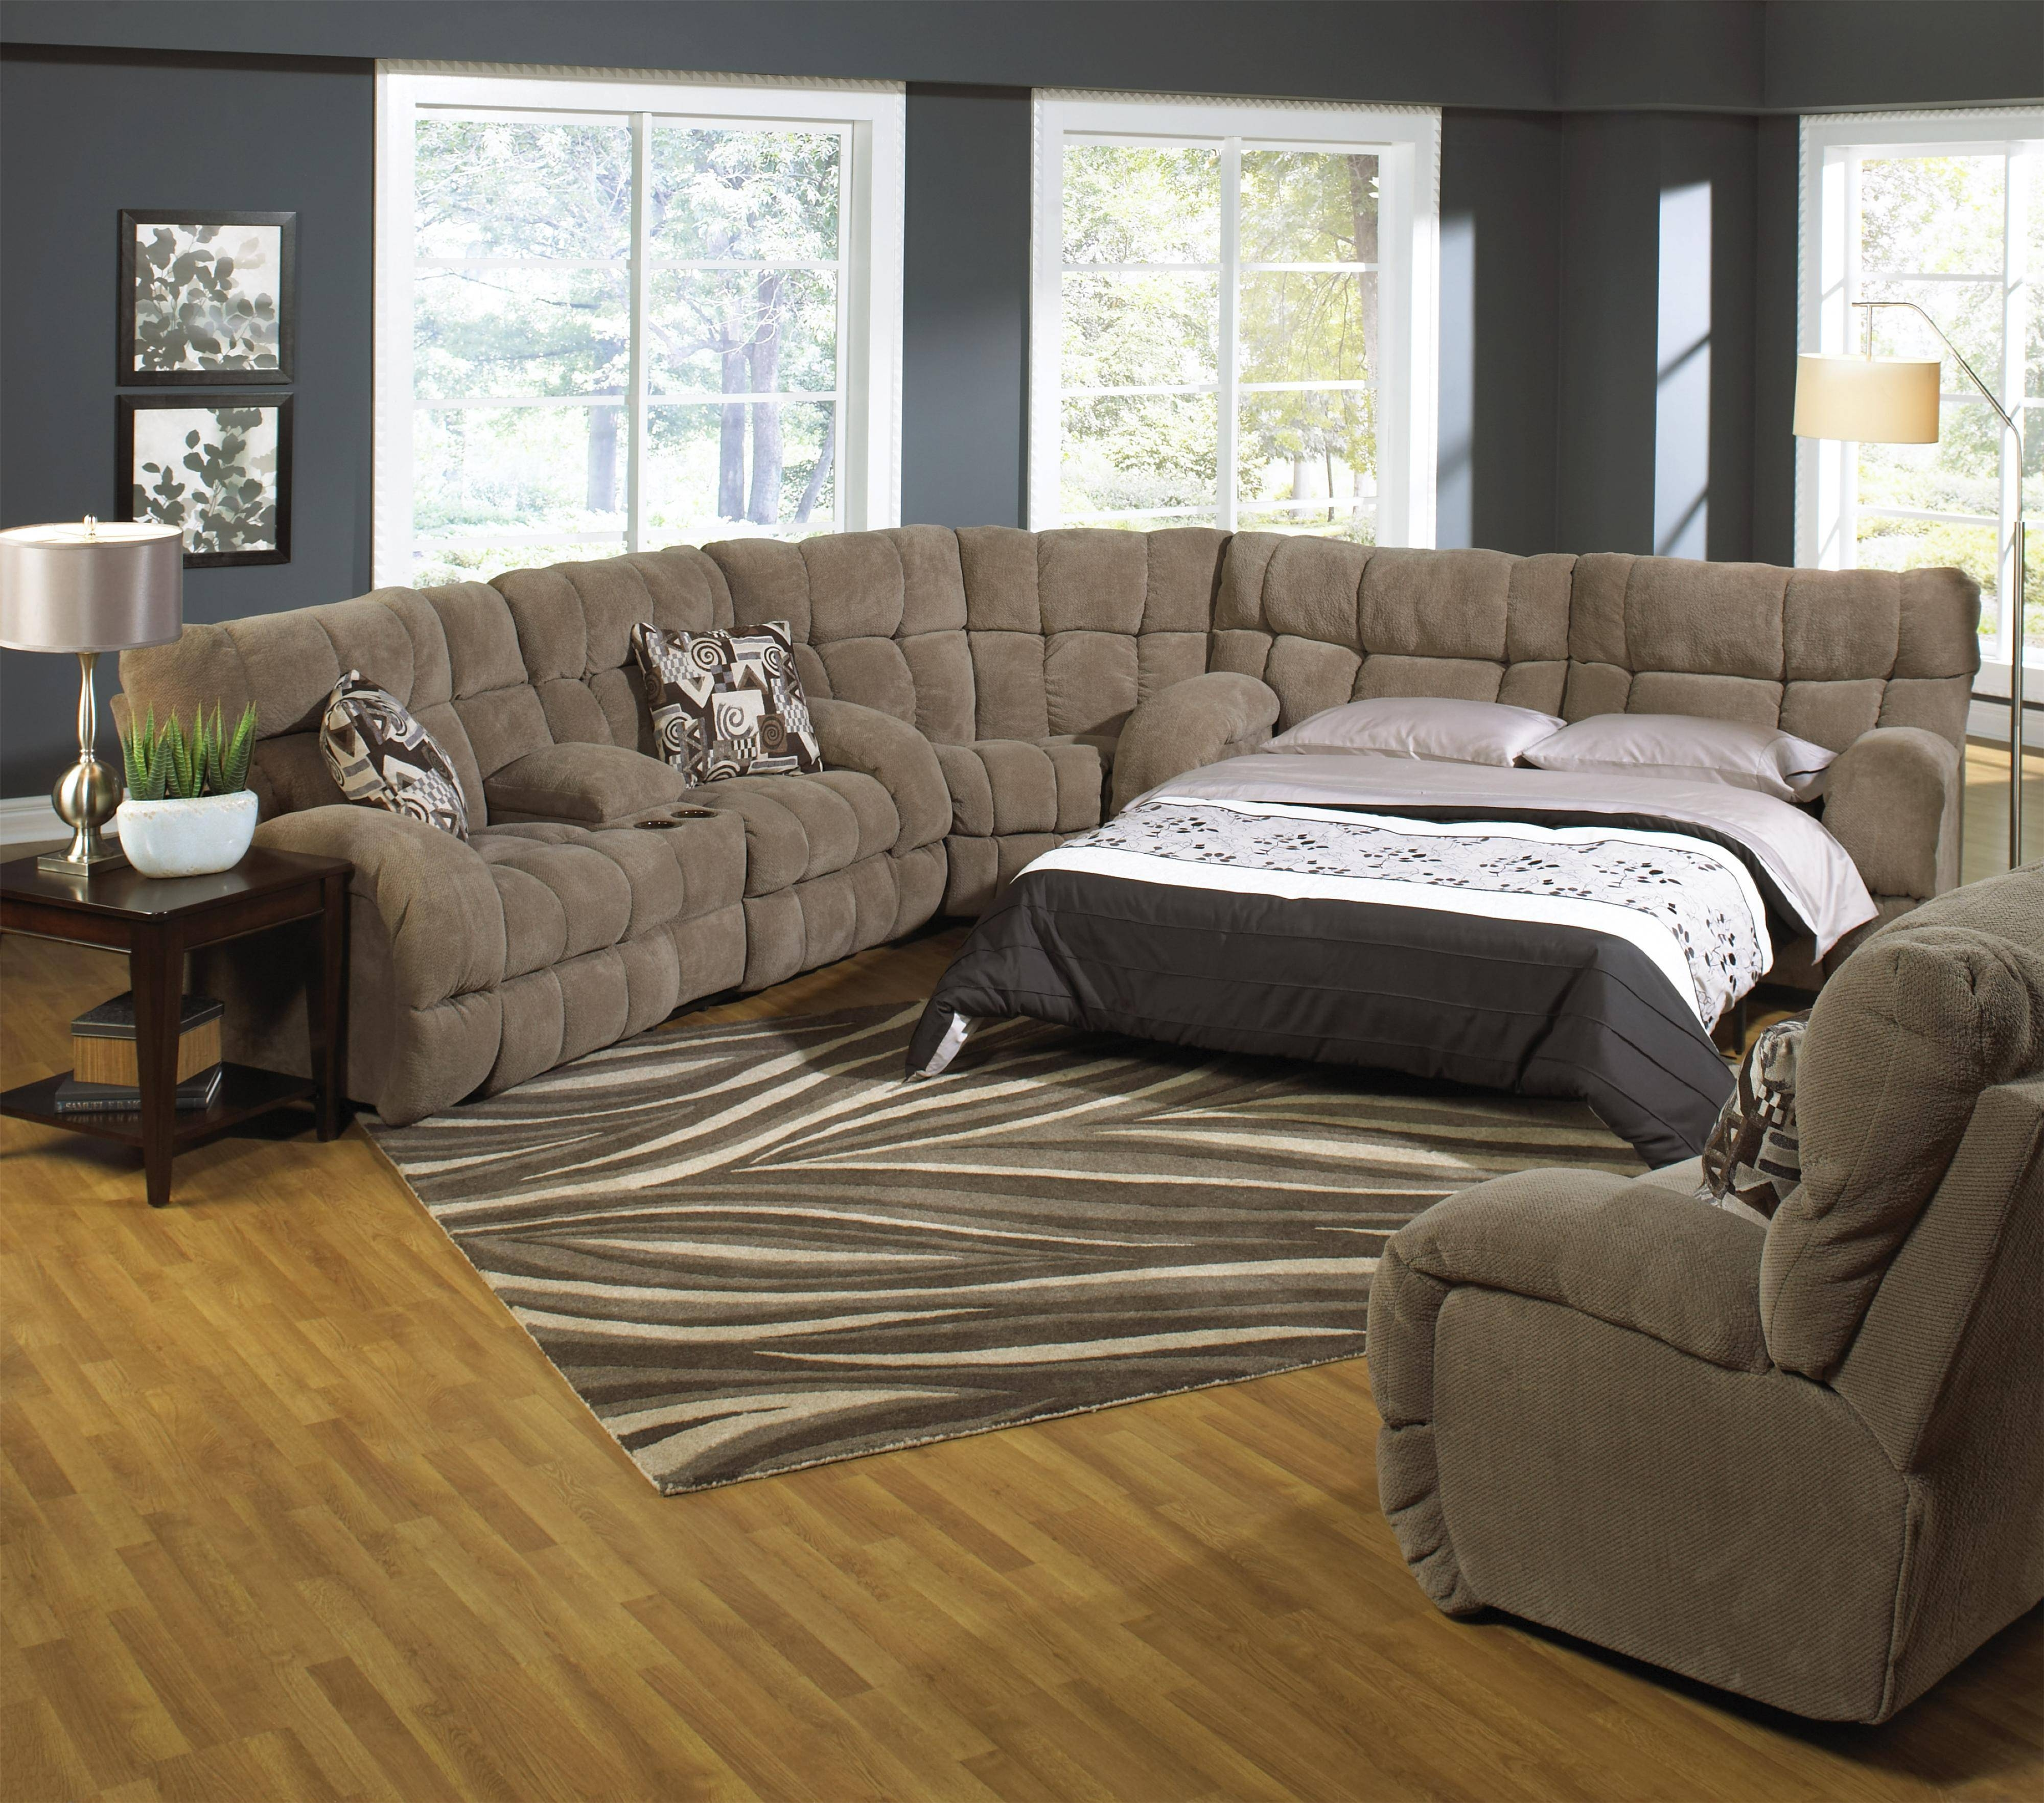 Furniture: Incredible Style Sectional Reclining Sofas For Your with regard to Sleeper Sectional Sofas (Image 7 of 30)